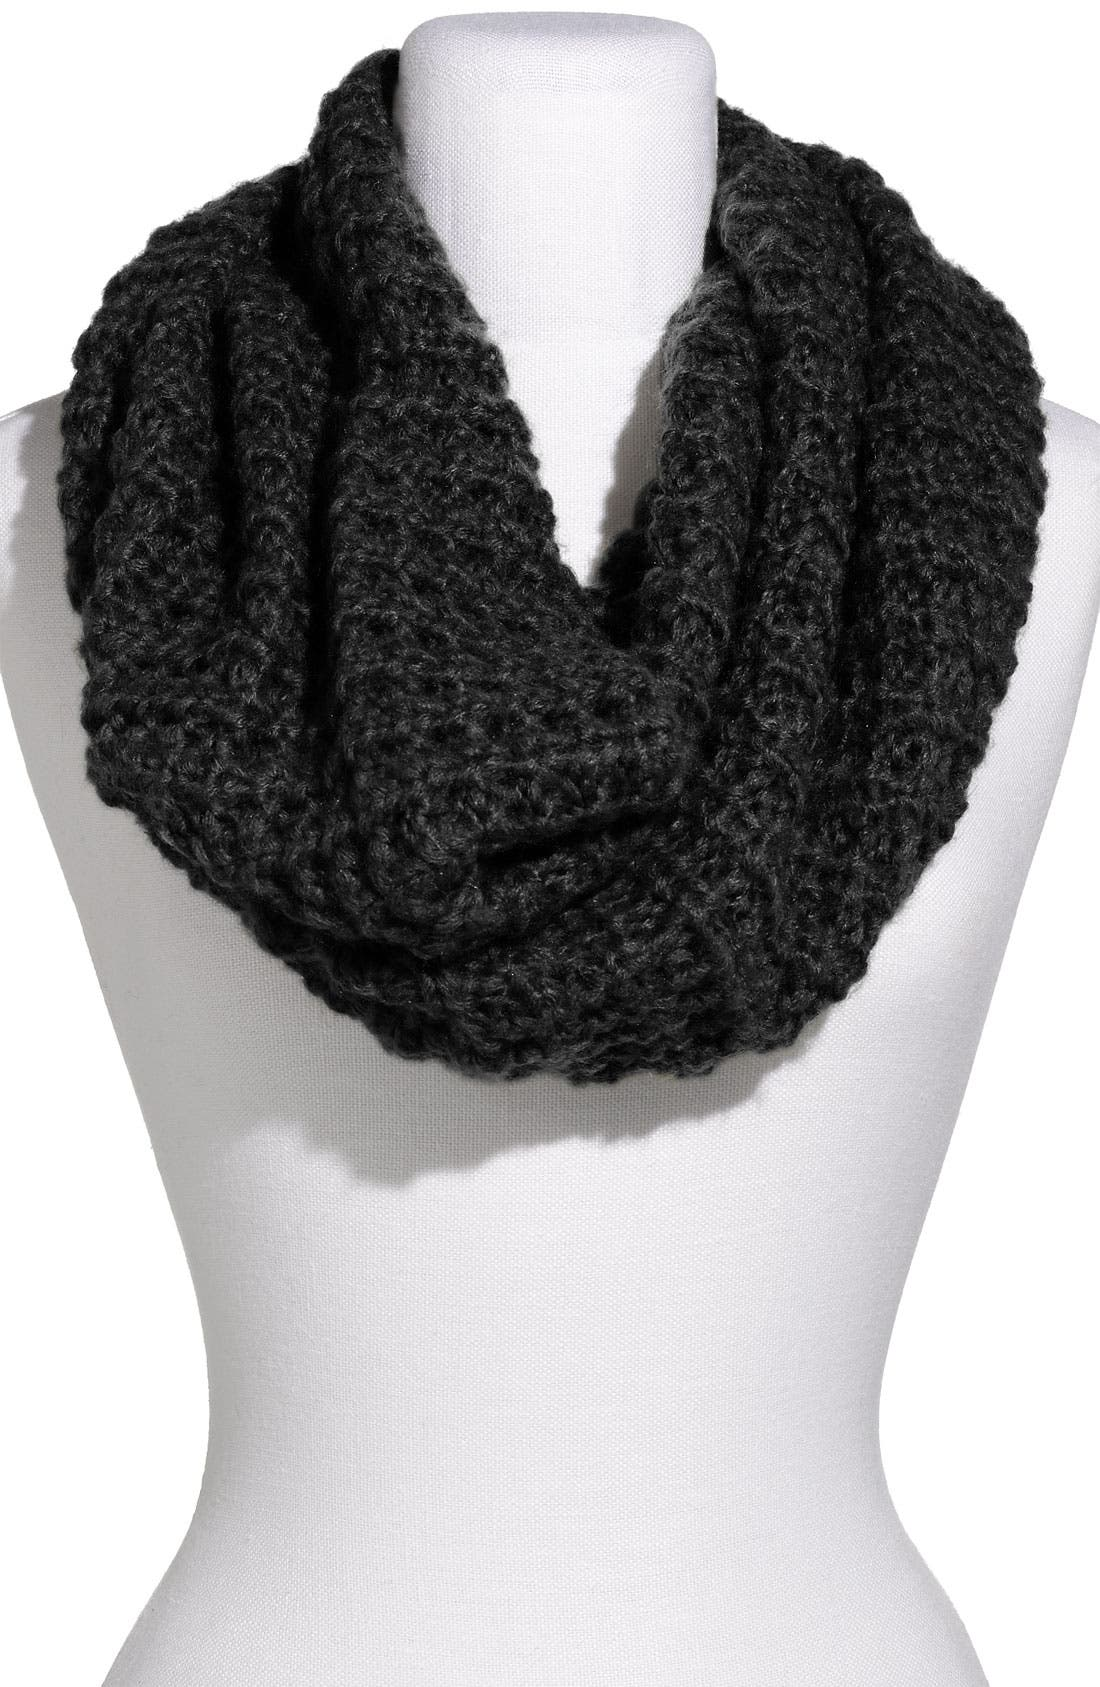 Alternate Image 1 Selected - Frenchi® Waffle Knit Infinity Scarf